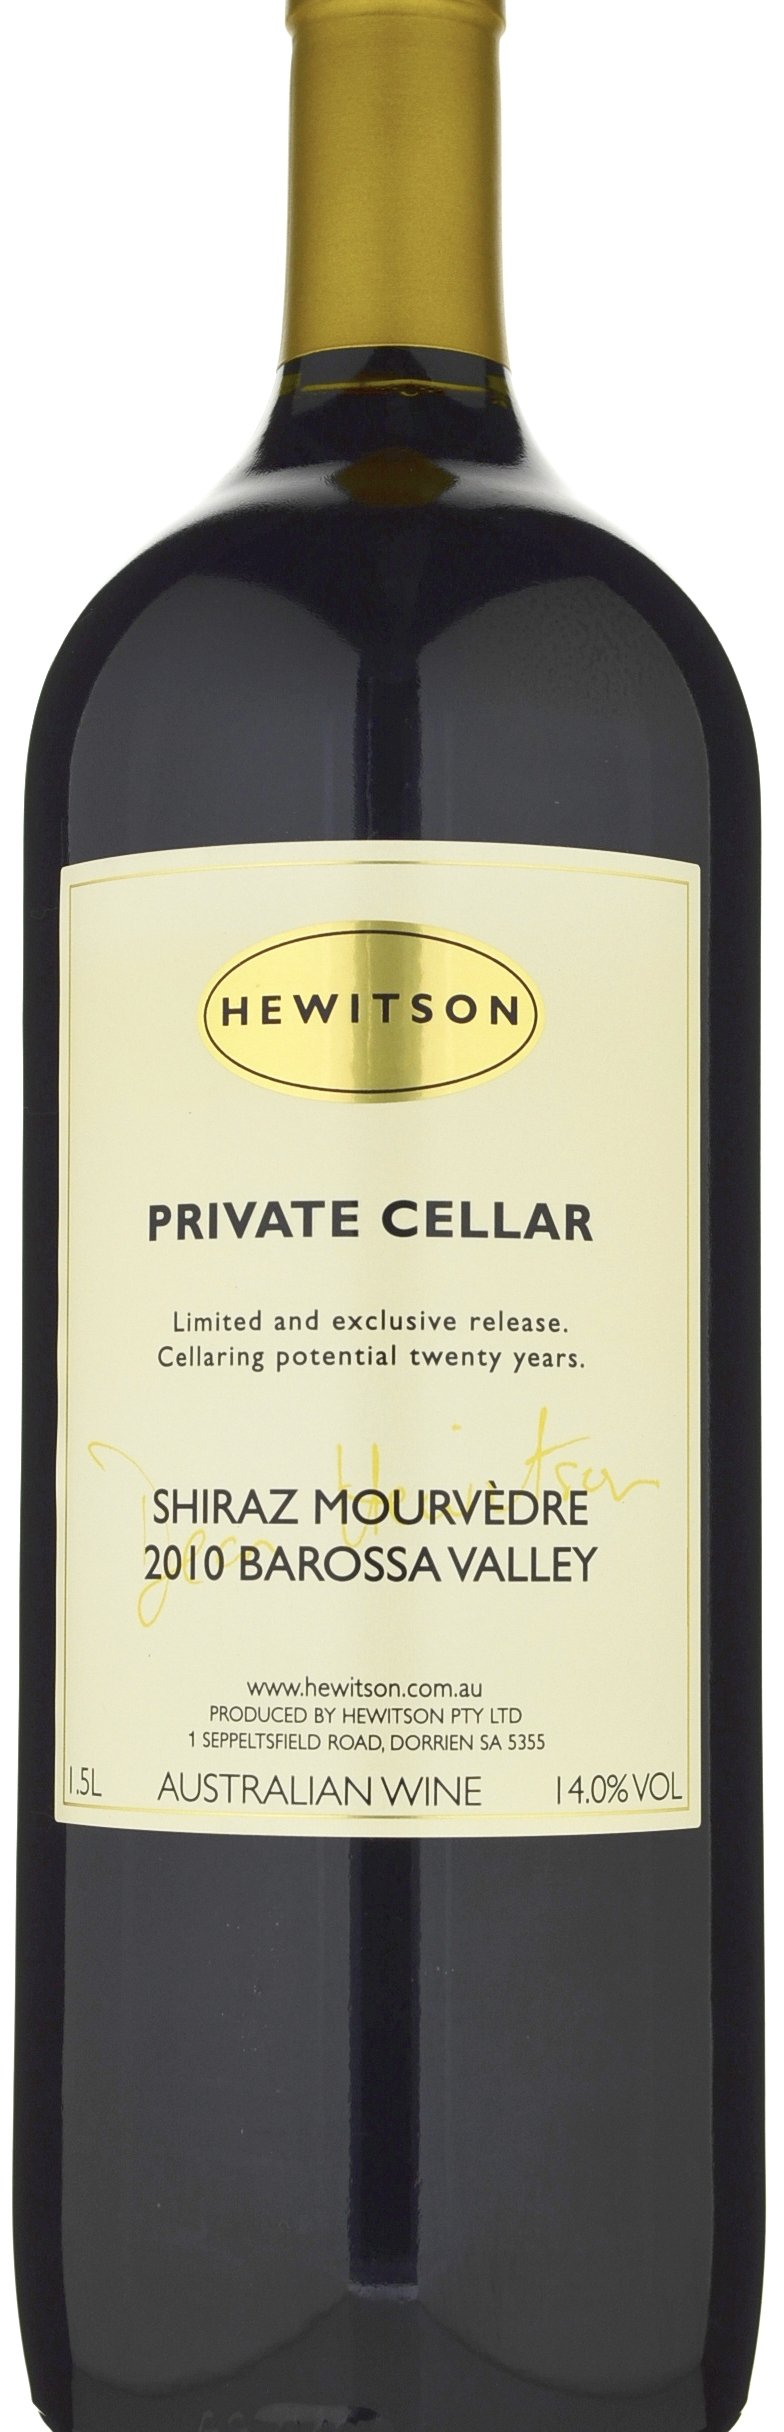 Hewitson 'Private Cellar' Shiraz-Mourvedre 2008 (1500ml Magnum)-1479